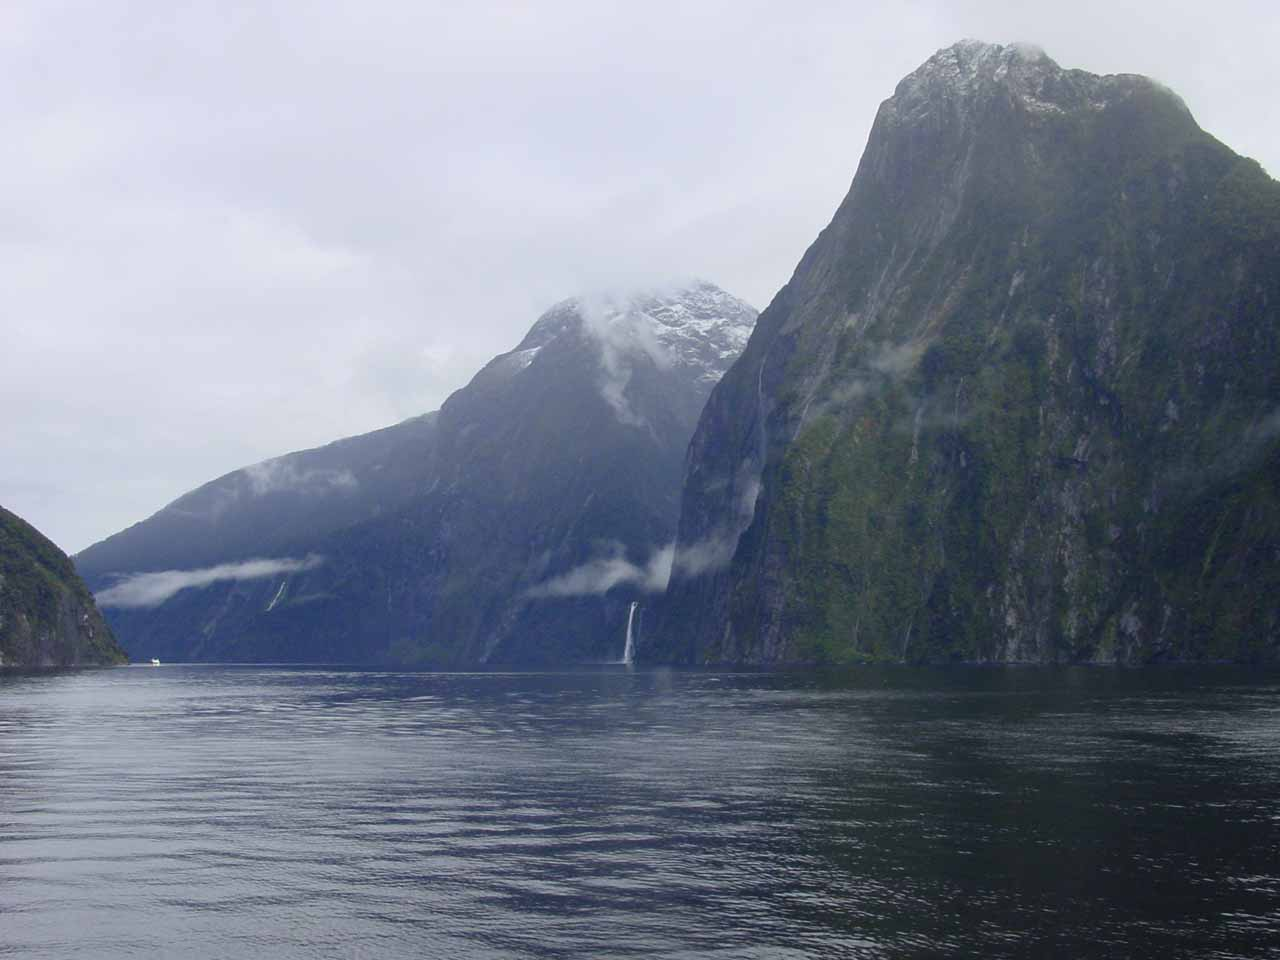 Looking towards Stirling Falls in the distance while on Milford Sound